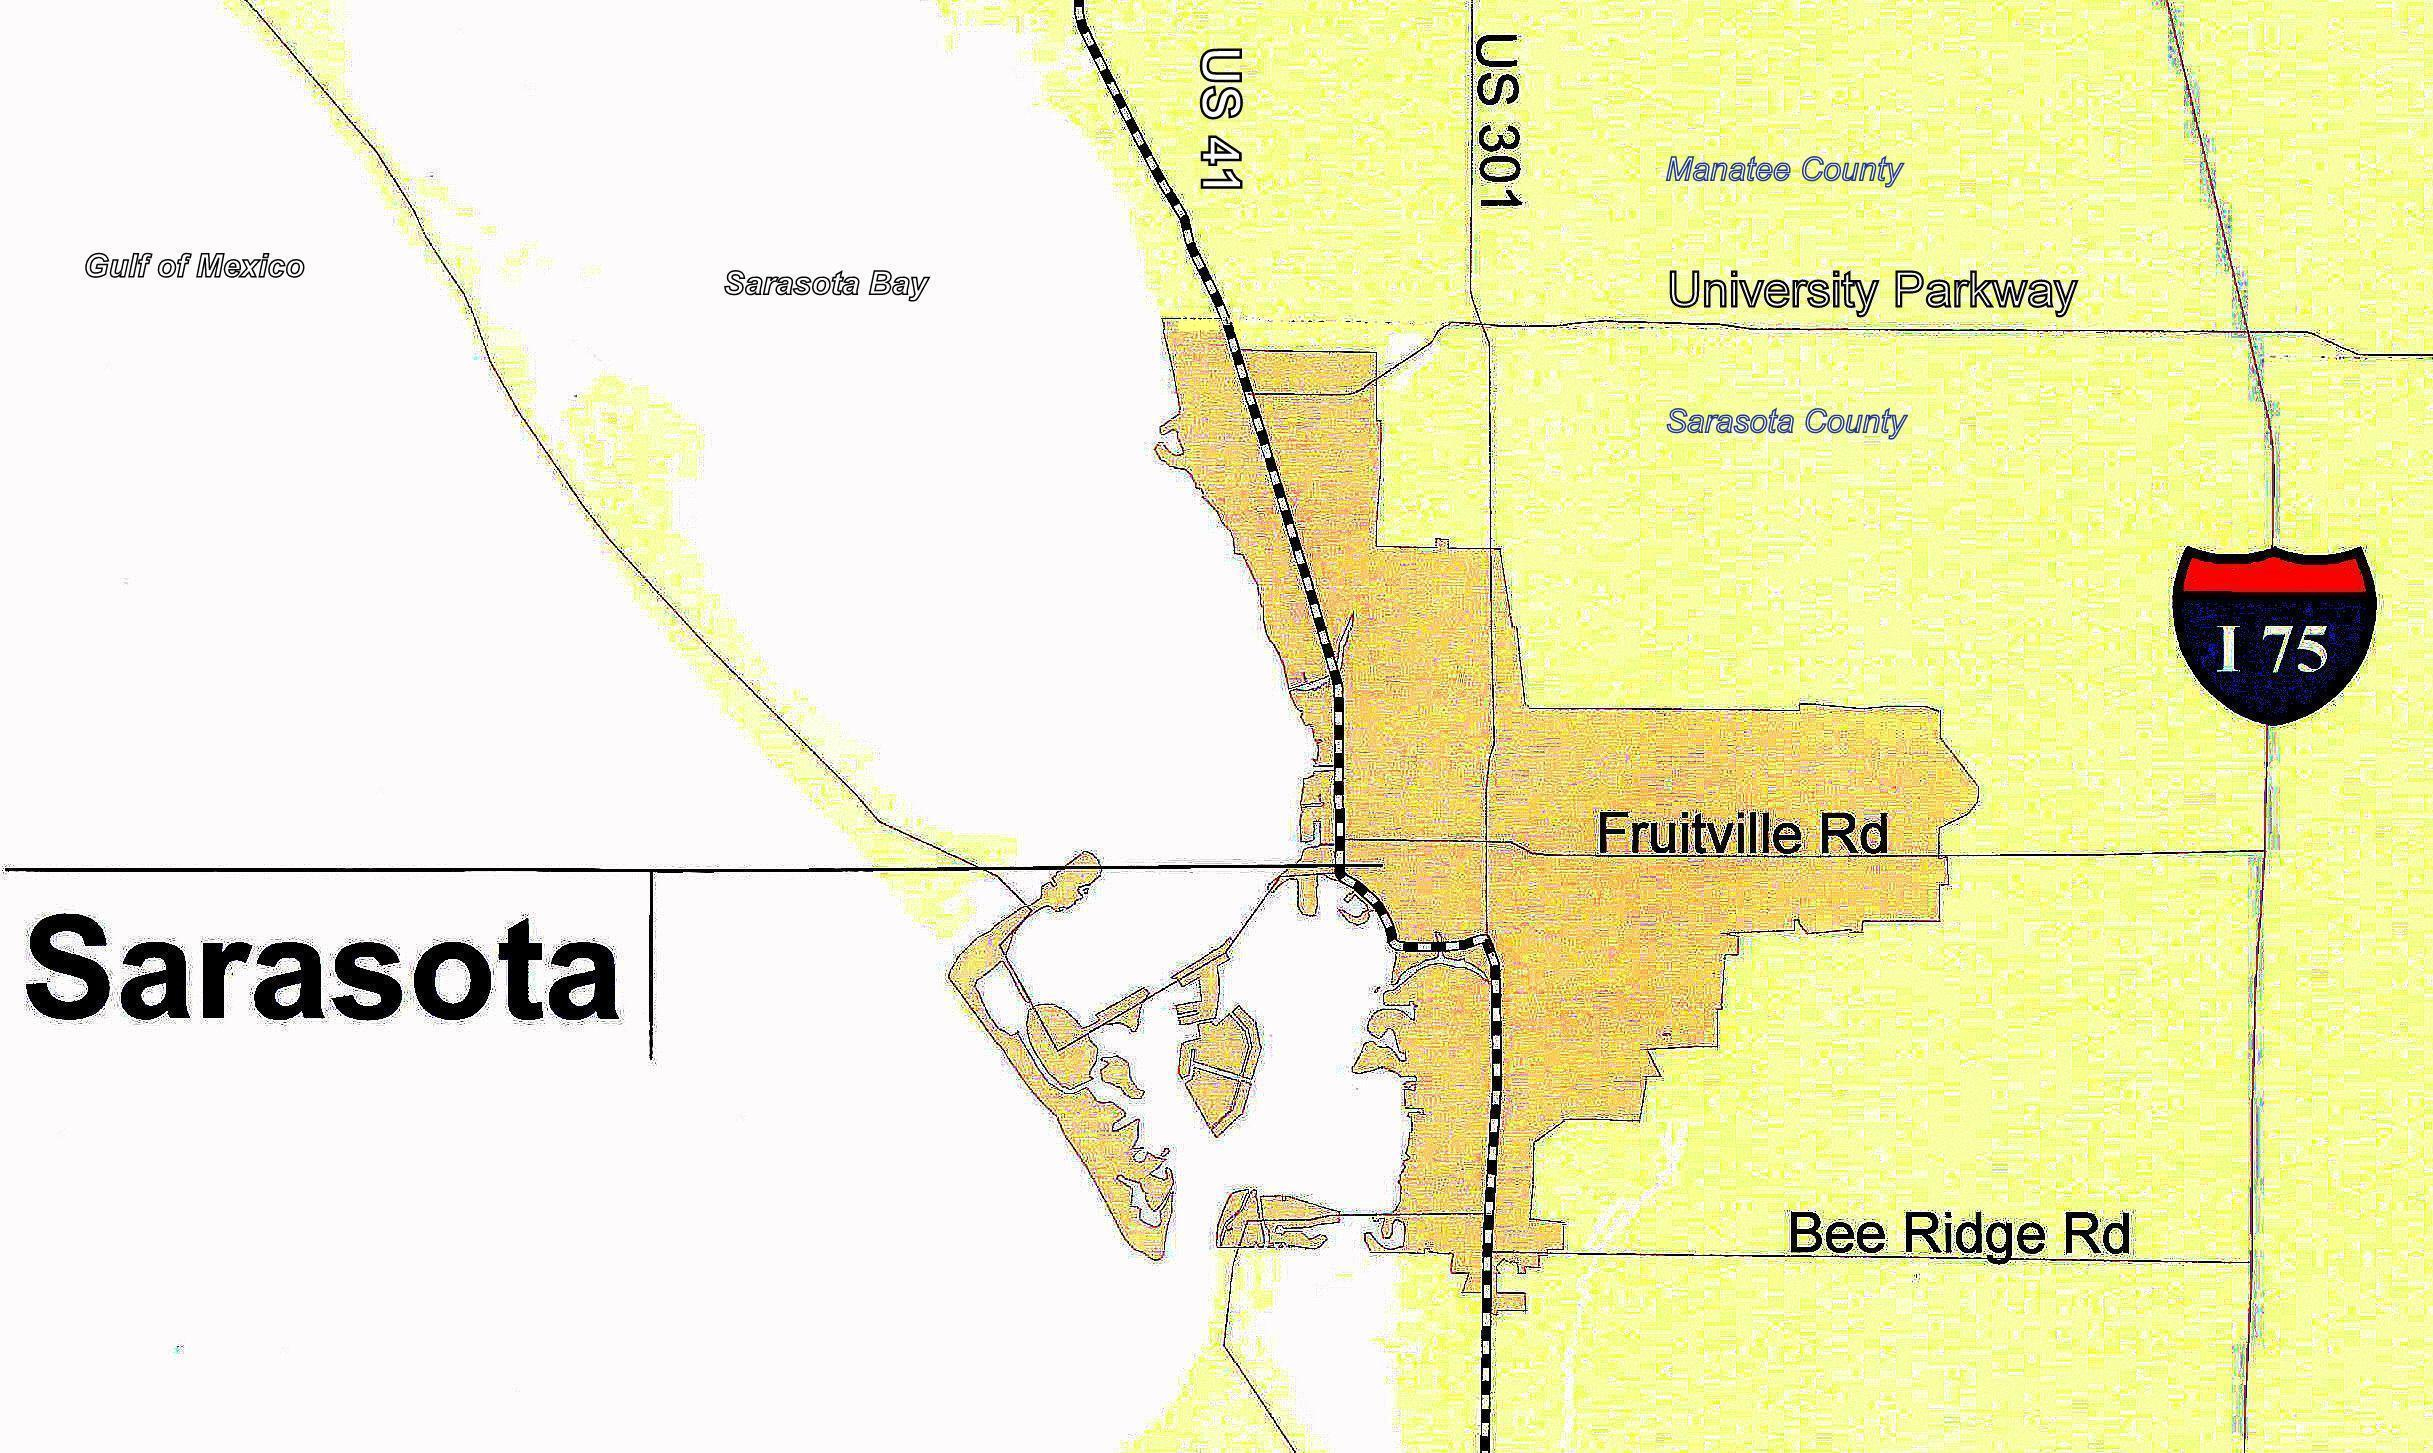 File:sarasota - City Colored Gold 2.0 - 83D40M - Map Of Tamiami - Where Is Sarasota Florida On The Map